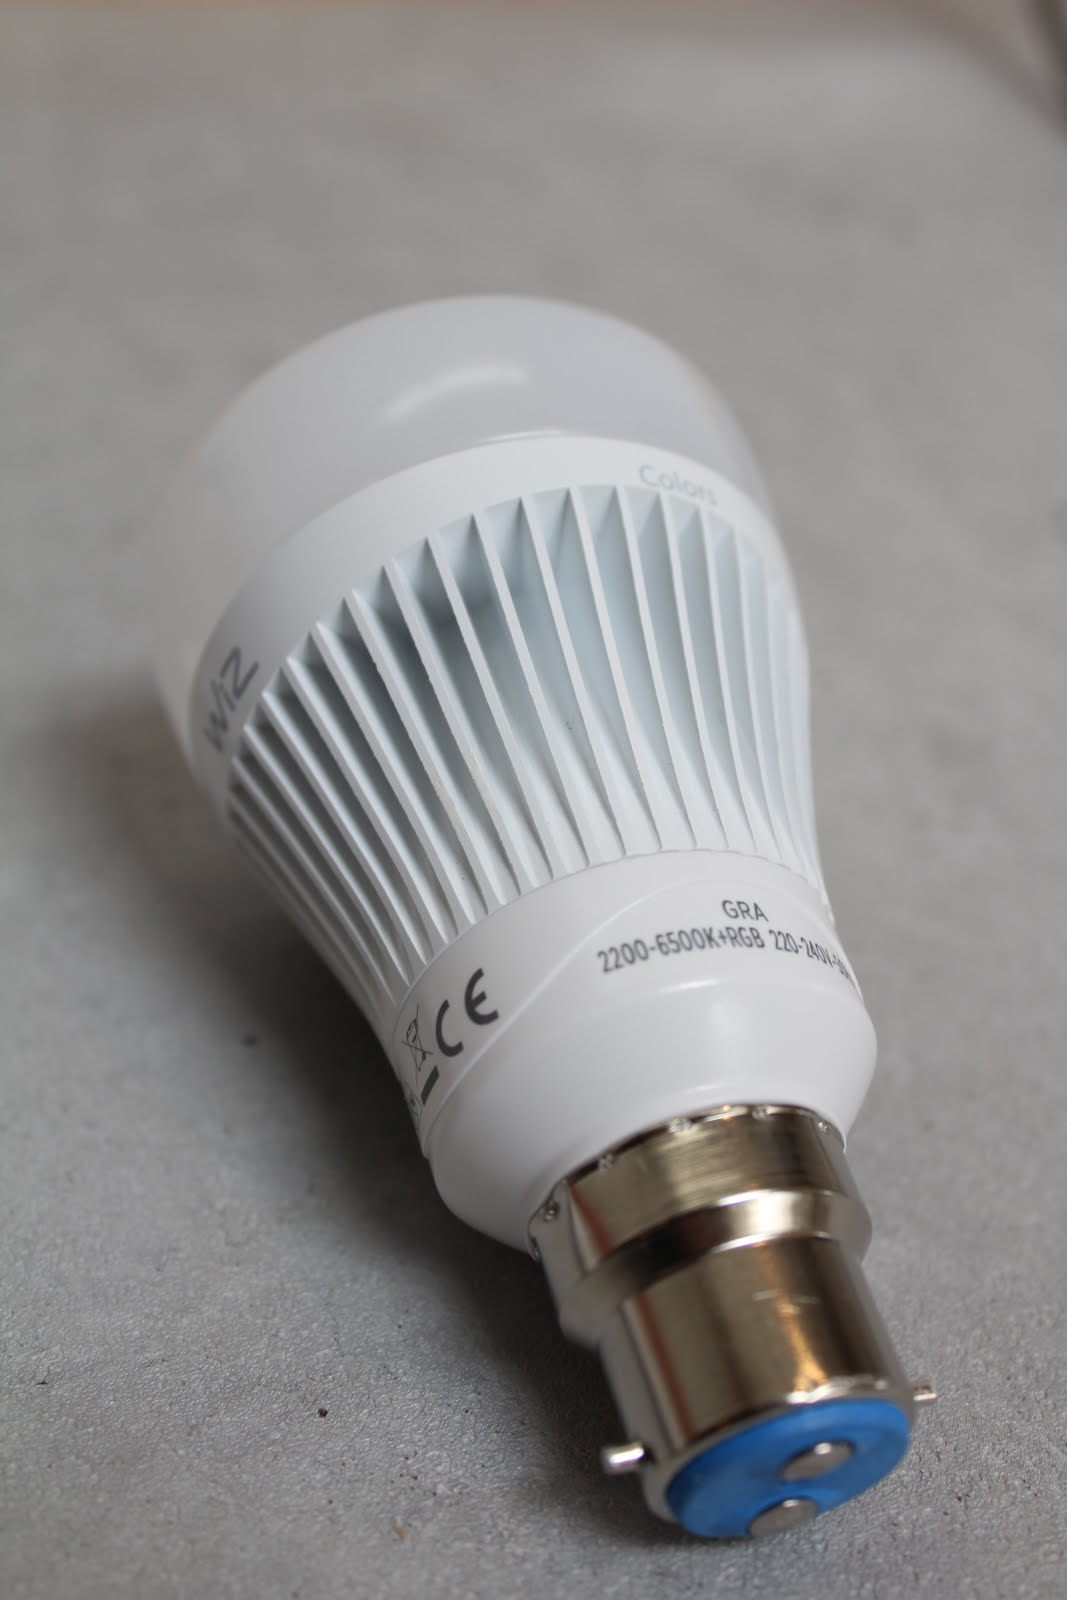 What do smart light bulbs look like